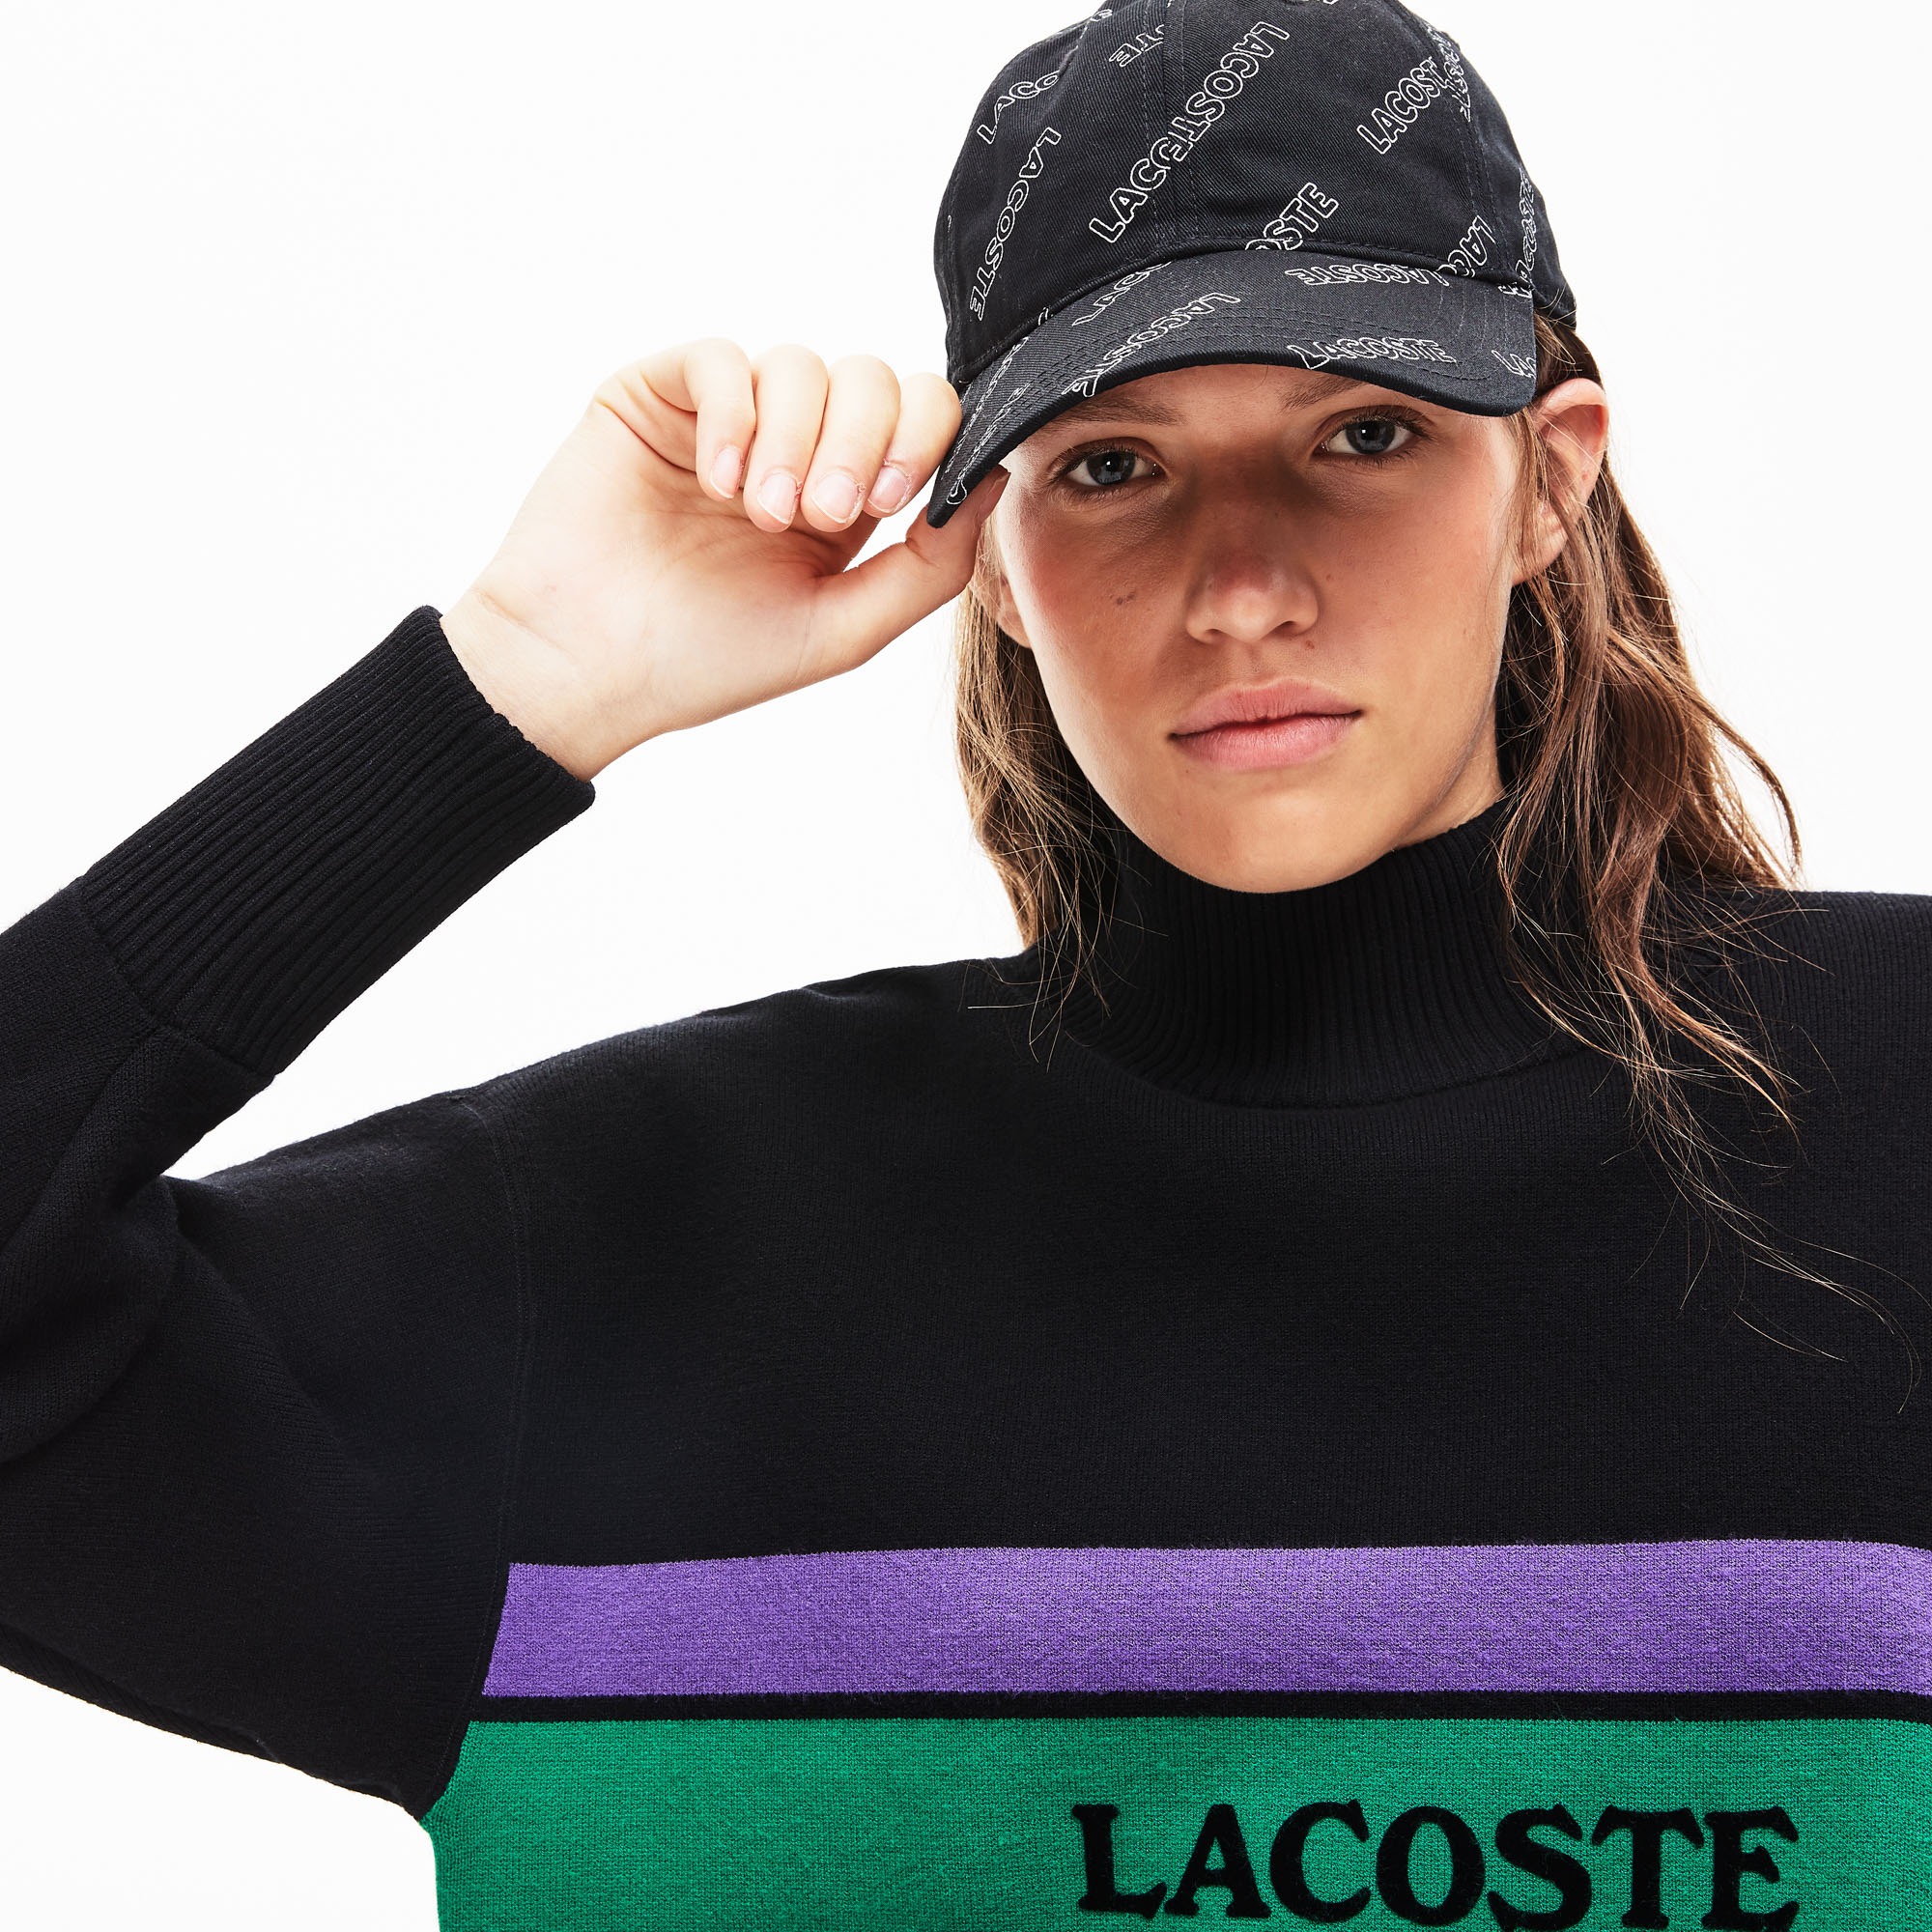 Women's Lacoste LIVE Vintage Striped Sweater